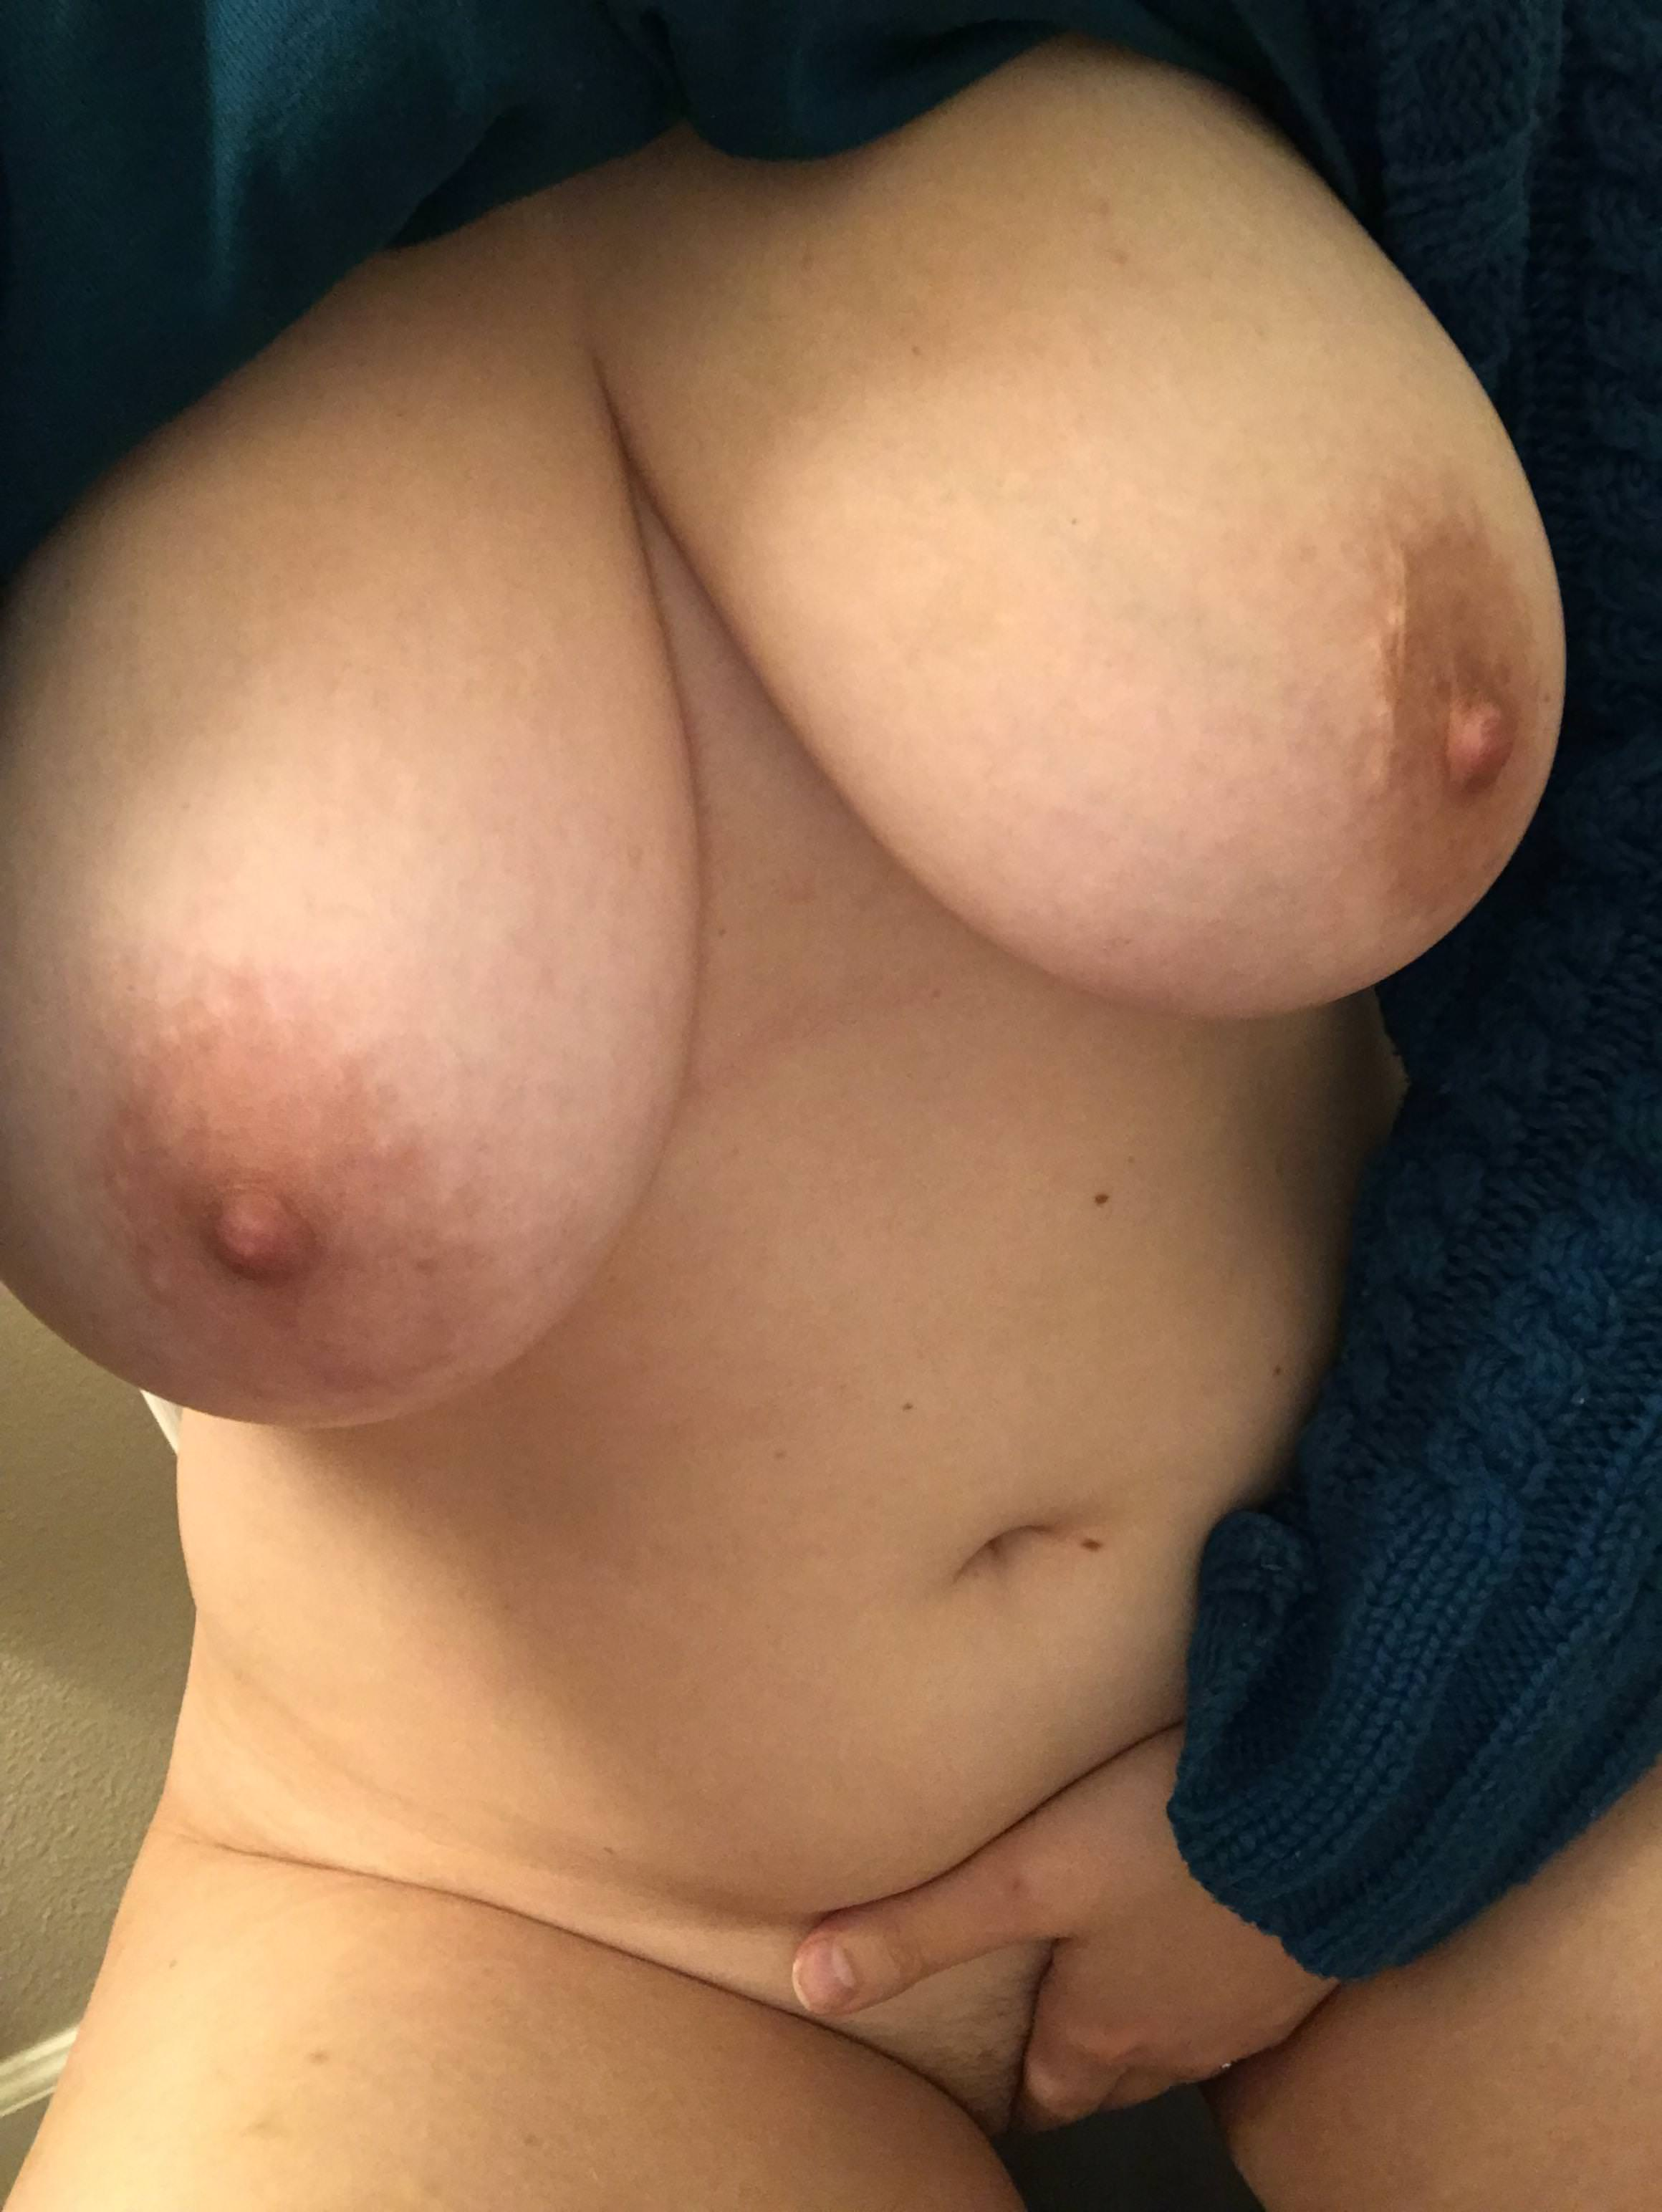 Free tity porn Nude Sexy Ladies Pictures Tity Porn